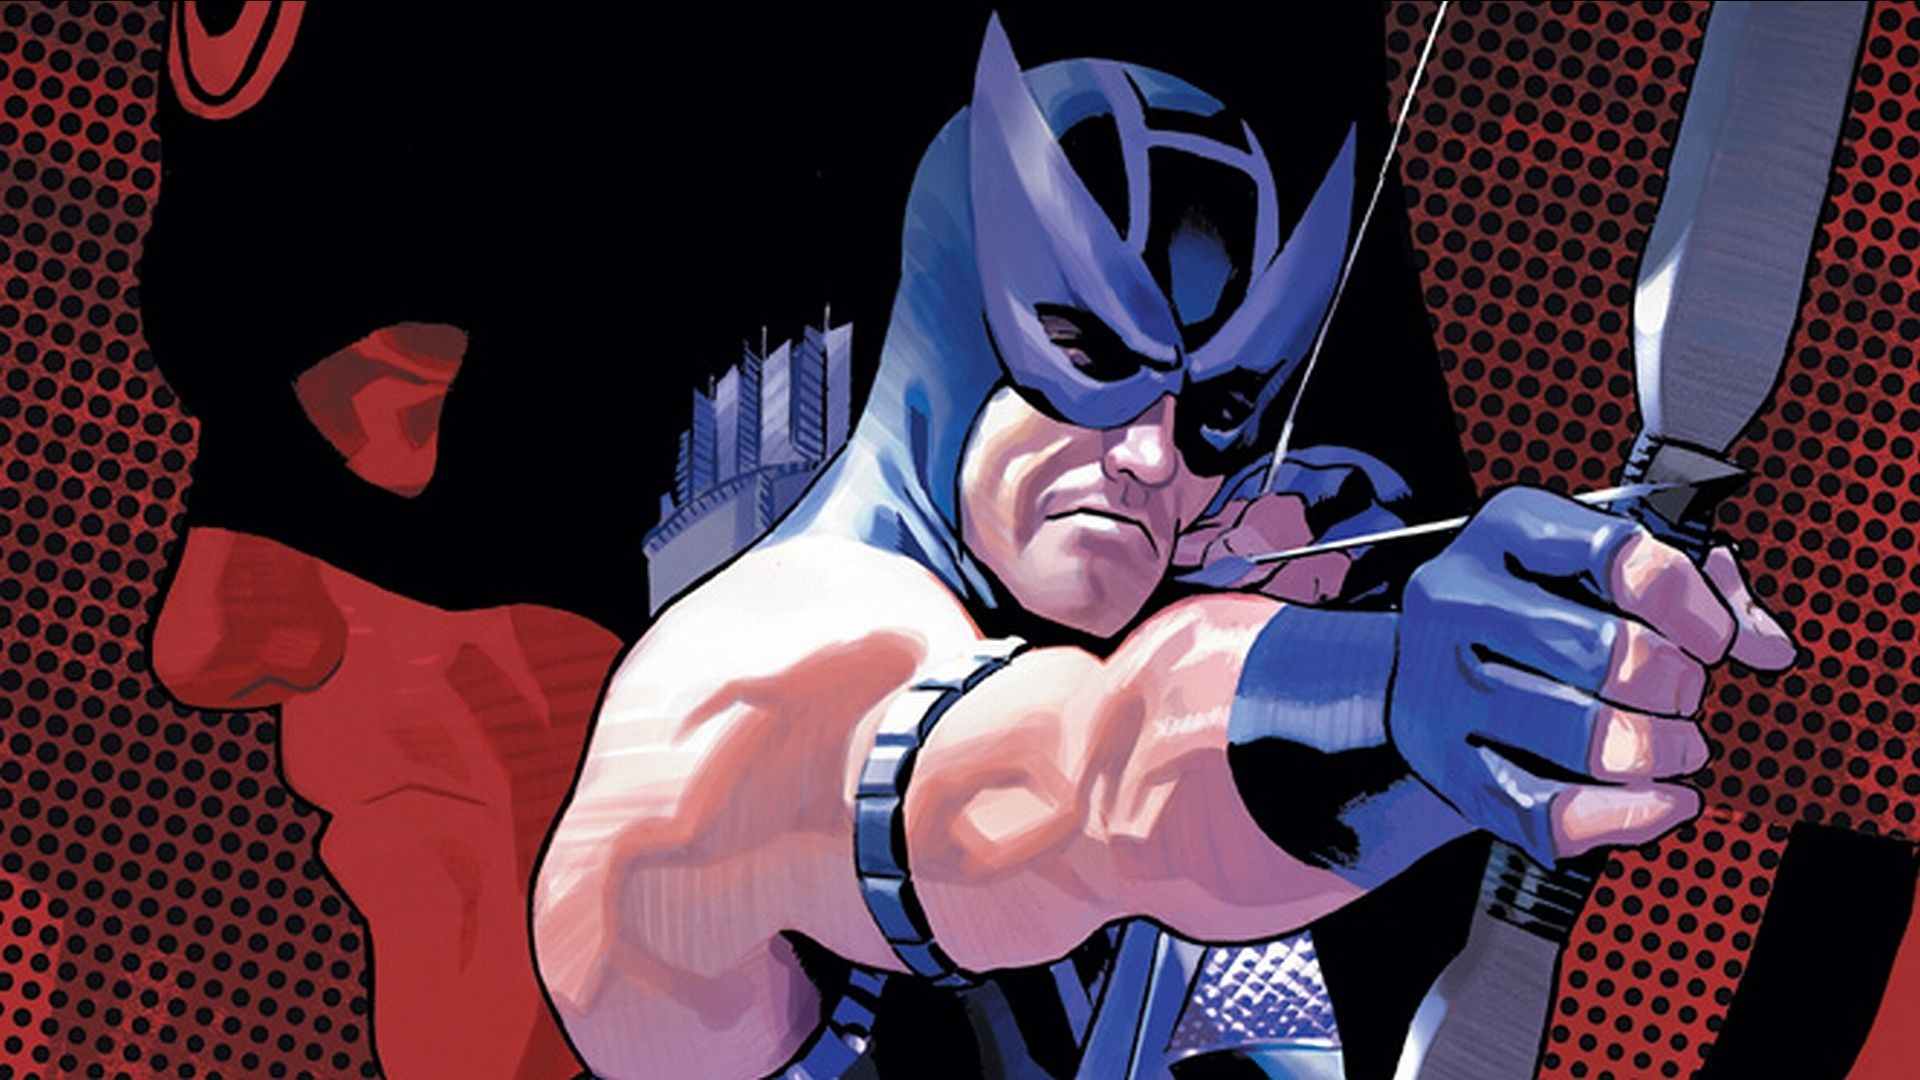 Hawkeye Wallpaper Marvel 72 images 1920x1080